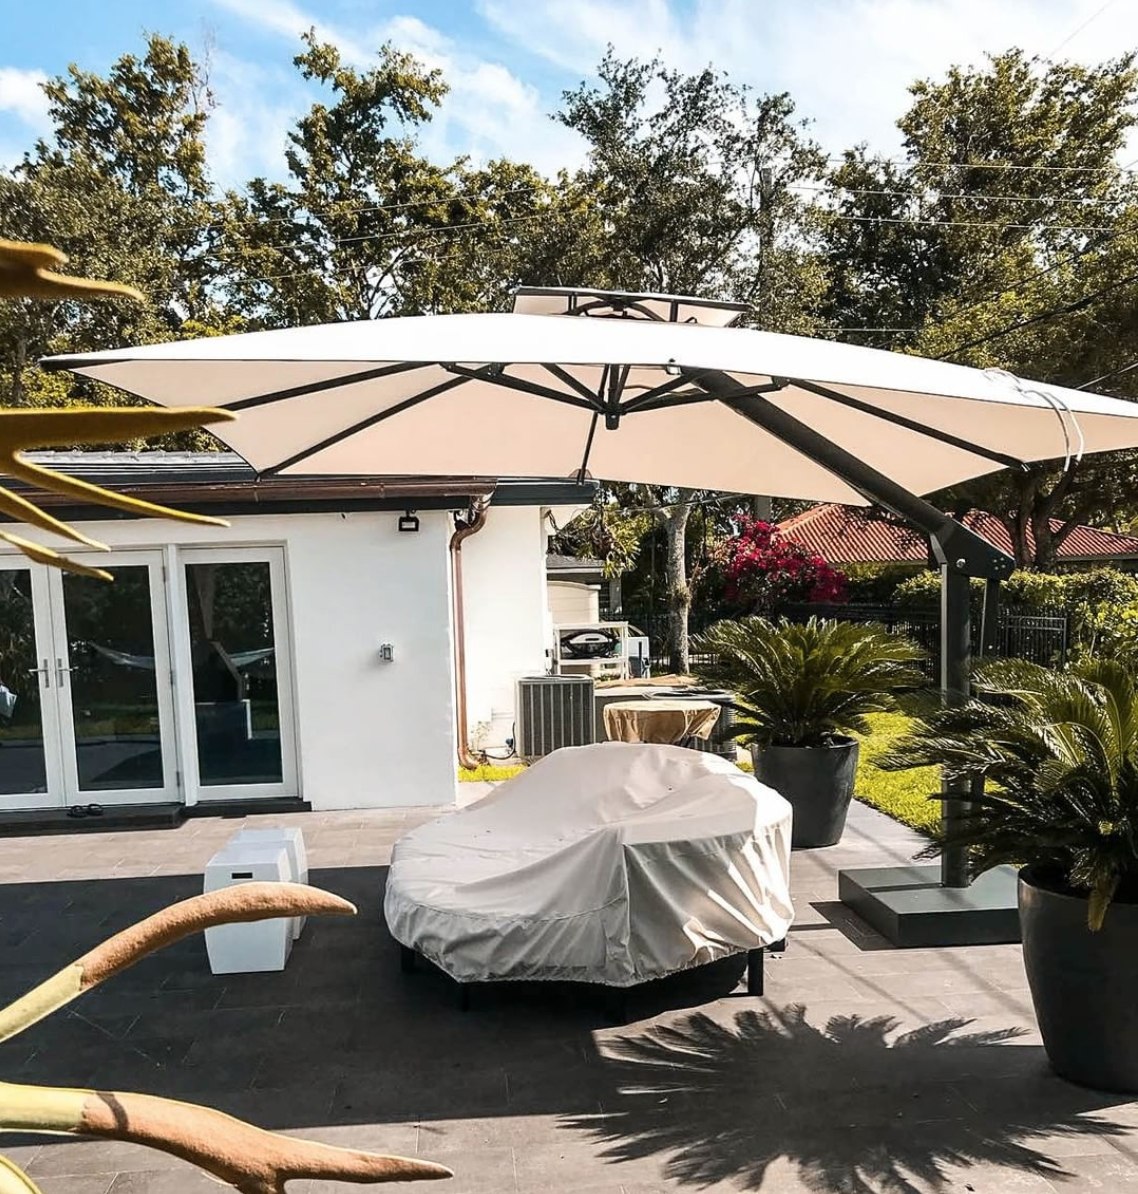 The Complete Buyers Guide For Large Patio Umbrellas – Poggesi Usa In Most Up To Date Large Patio Umbrellas (View 16 of 20)